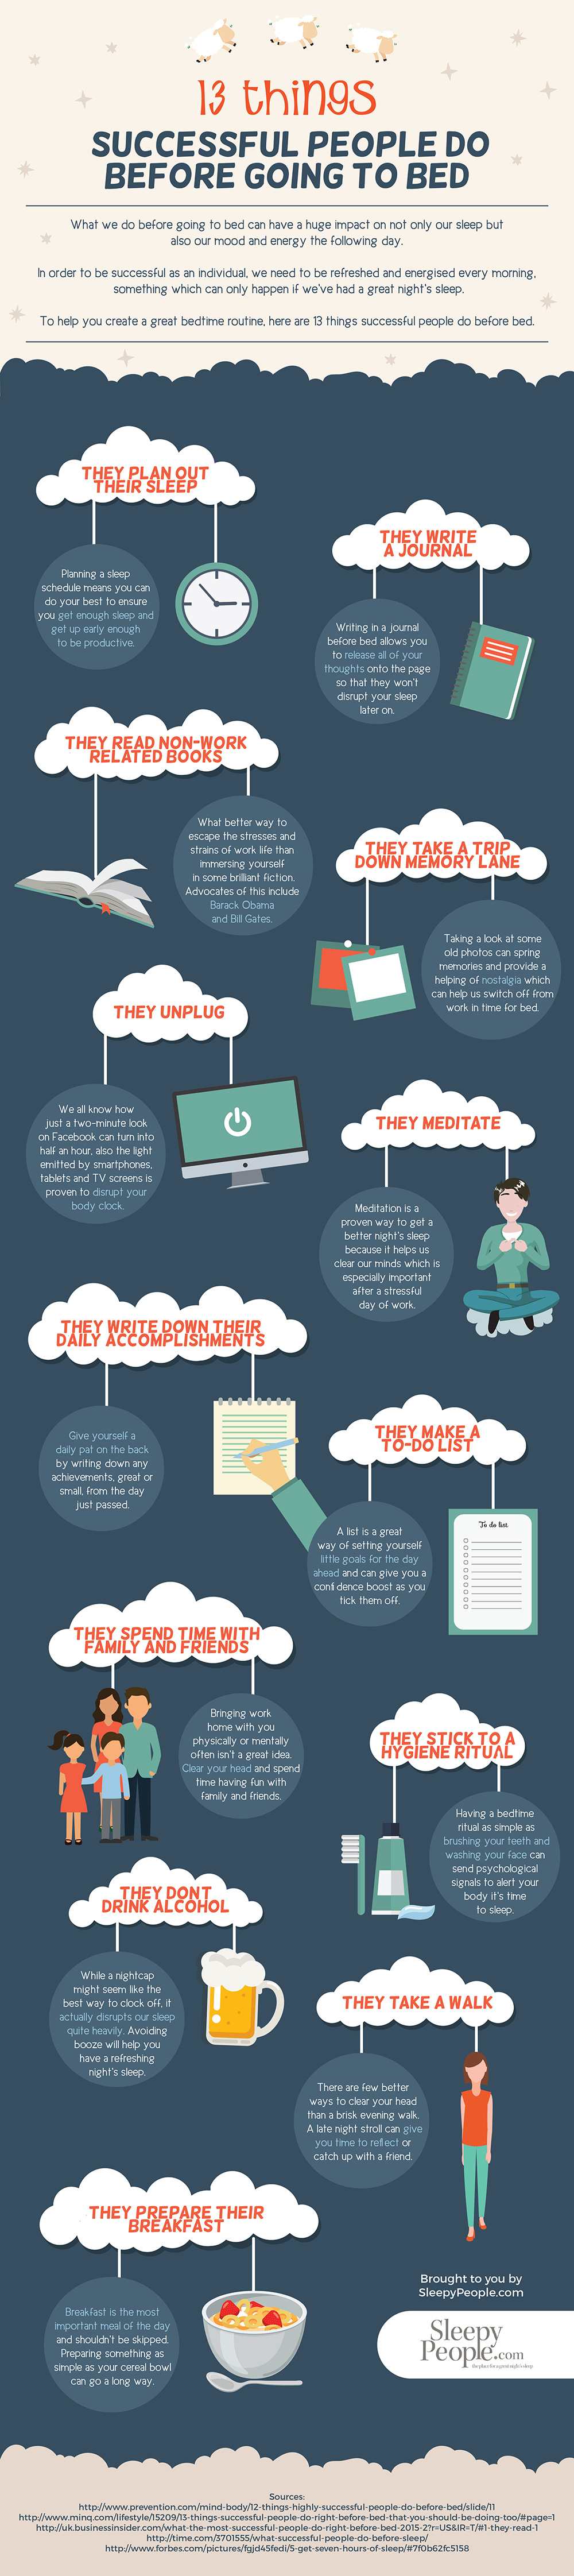 13 Things Successful People Do Before Going To Bed [Infographic]